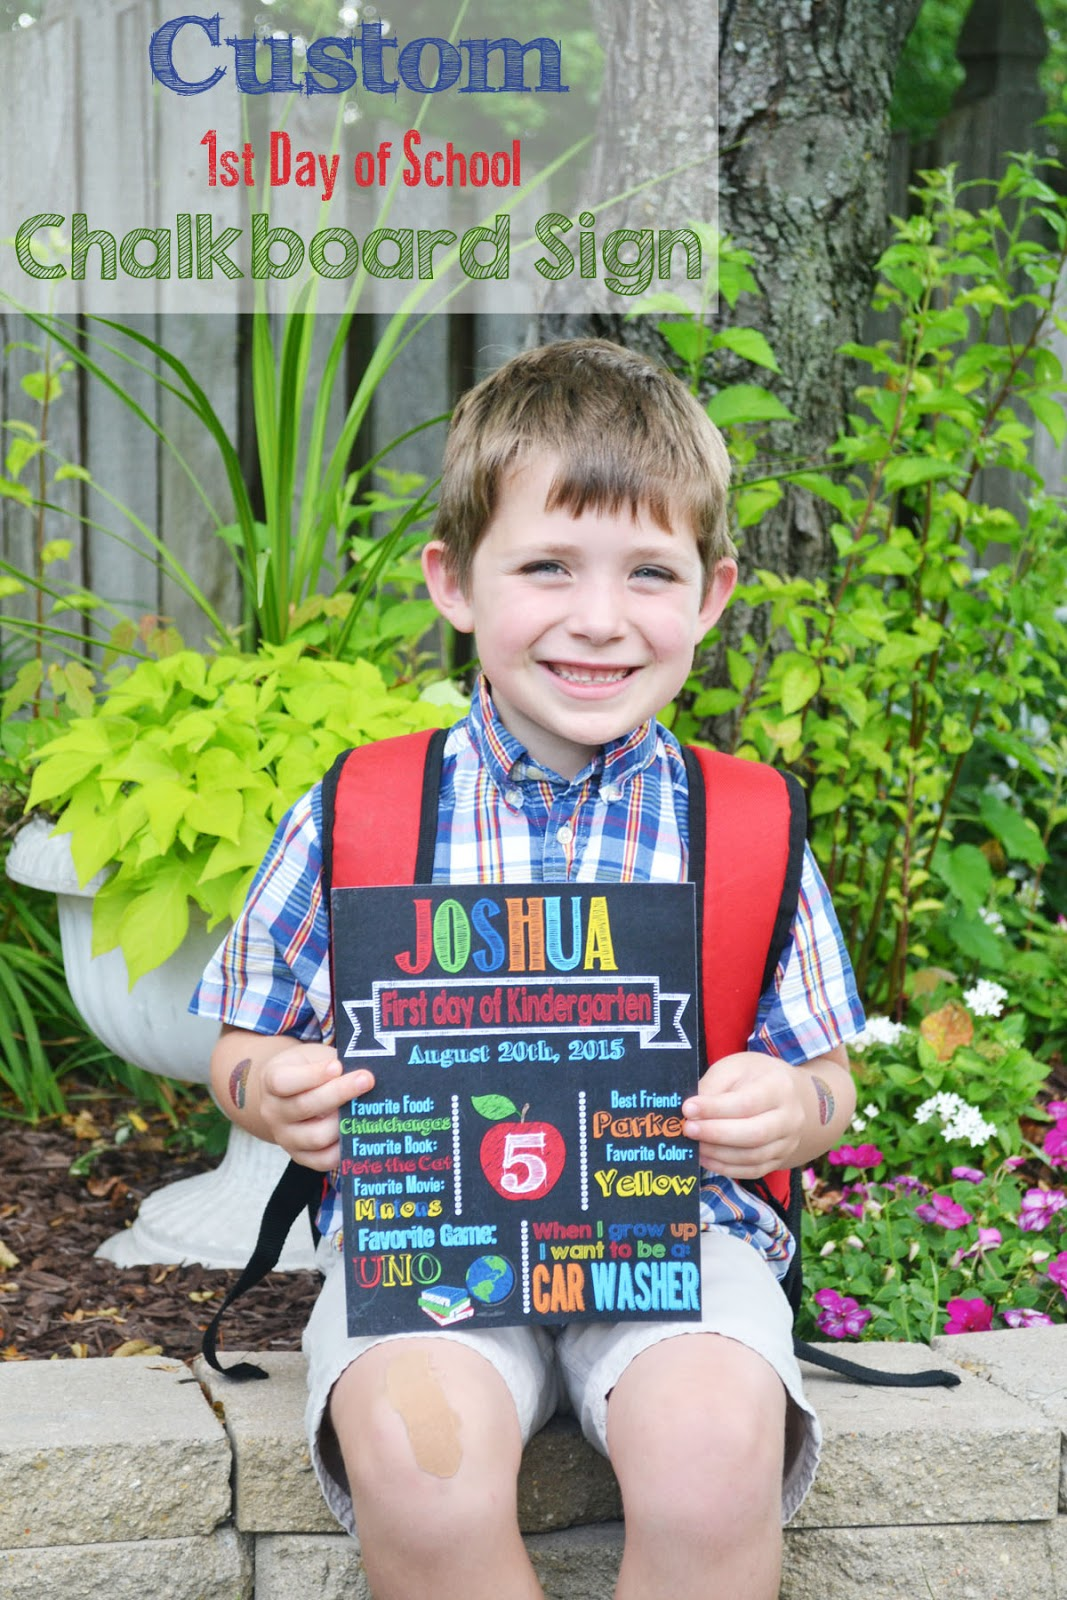 first day of school photo shoot ideas - A Manda Creation First Day of School Ideas and a